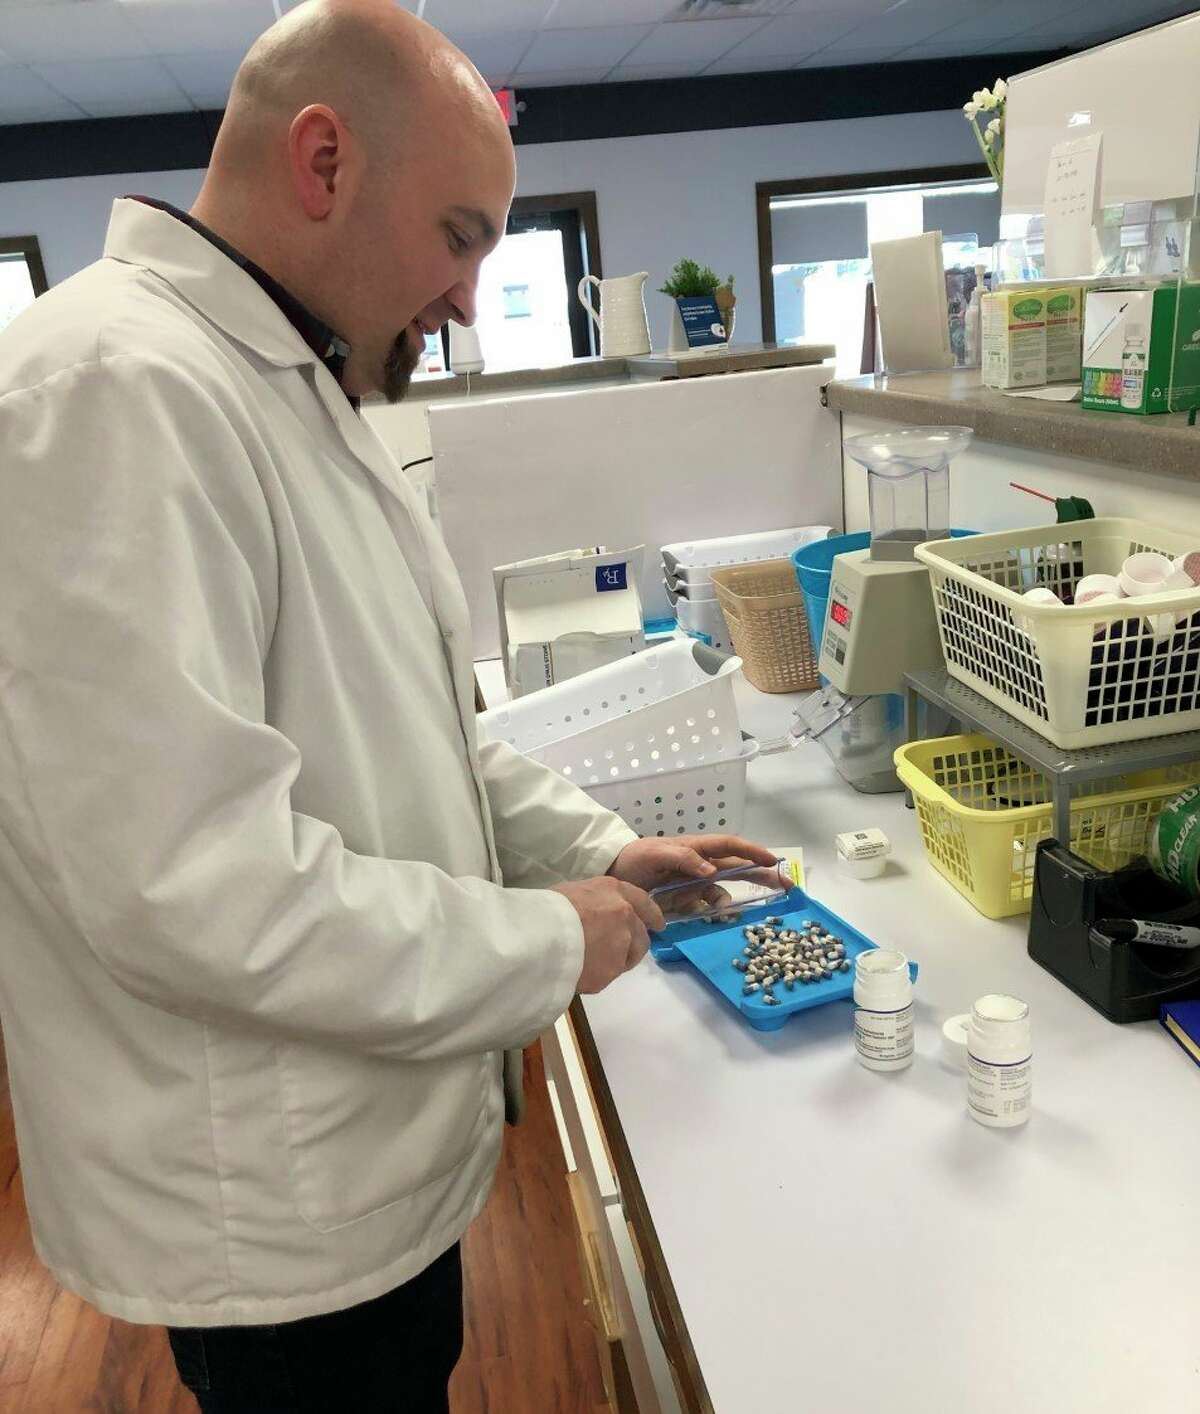 Pharmacist Brent Beemer said he takes extra safety precautions when he returns home after work including washing his clothes and taking a shower immediately. (Courtesy photo)